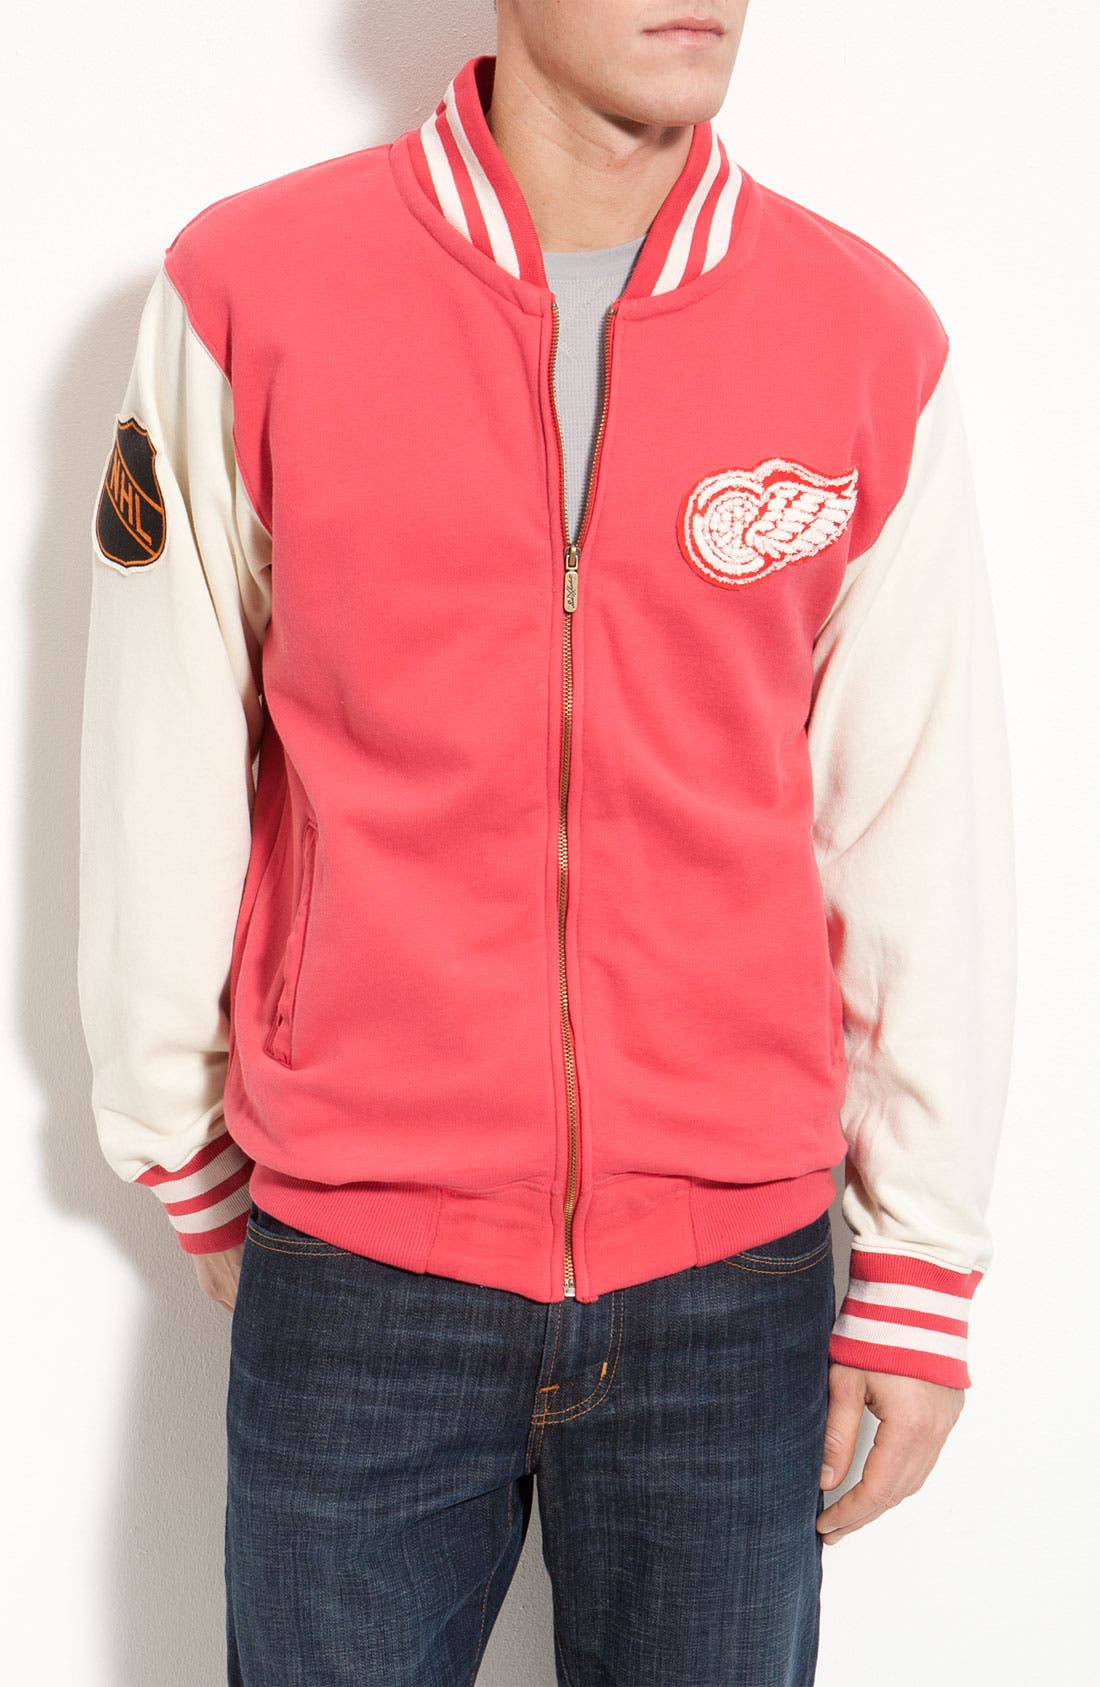 Main Image - Red Jacket 'Homeroom Red Wings' Jacket